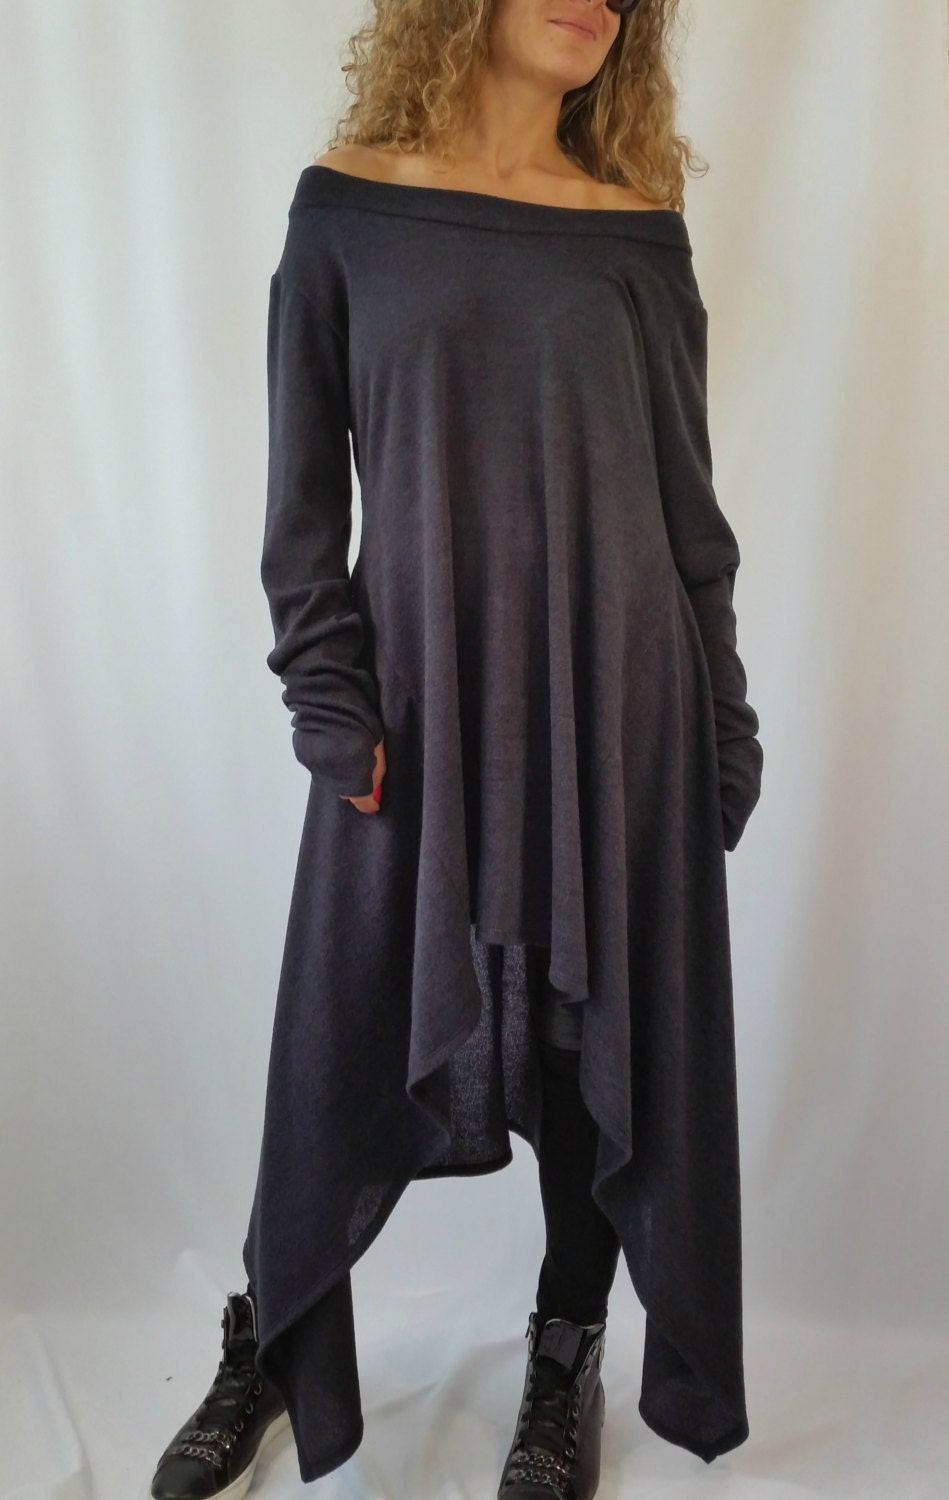 Grey Asymmetrical Sweater Top Long Sleeve Sweater Dress